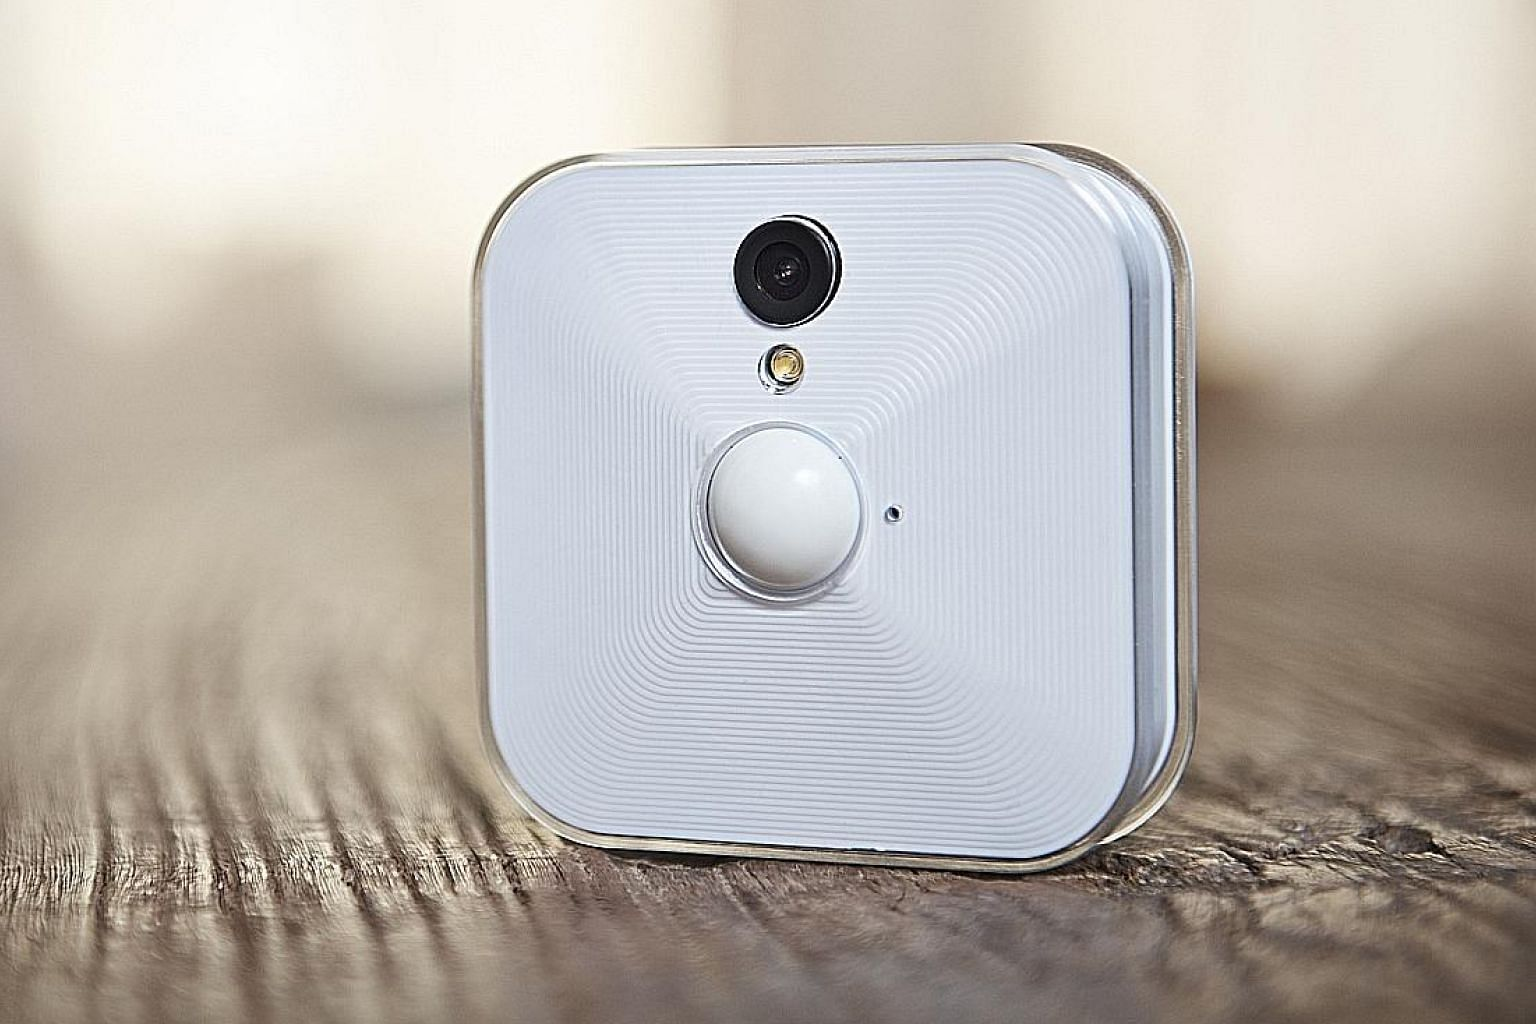 No wires needed as the Blink Home Security and HD Video Monitoring system uses two AA batteries.